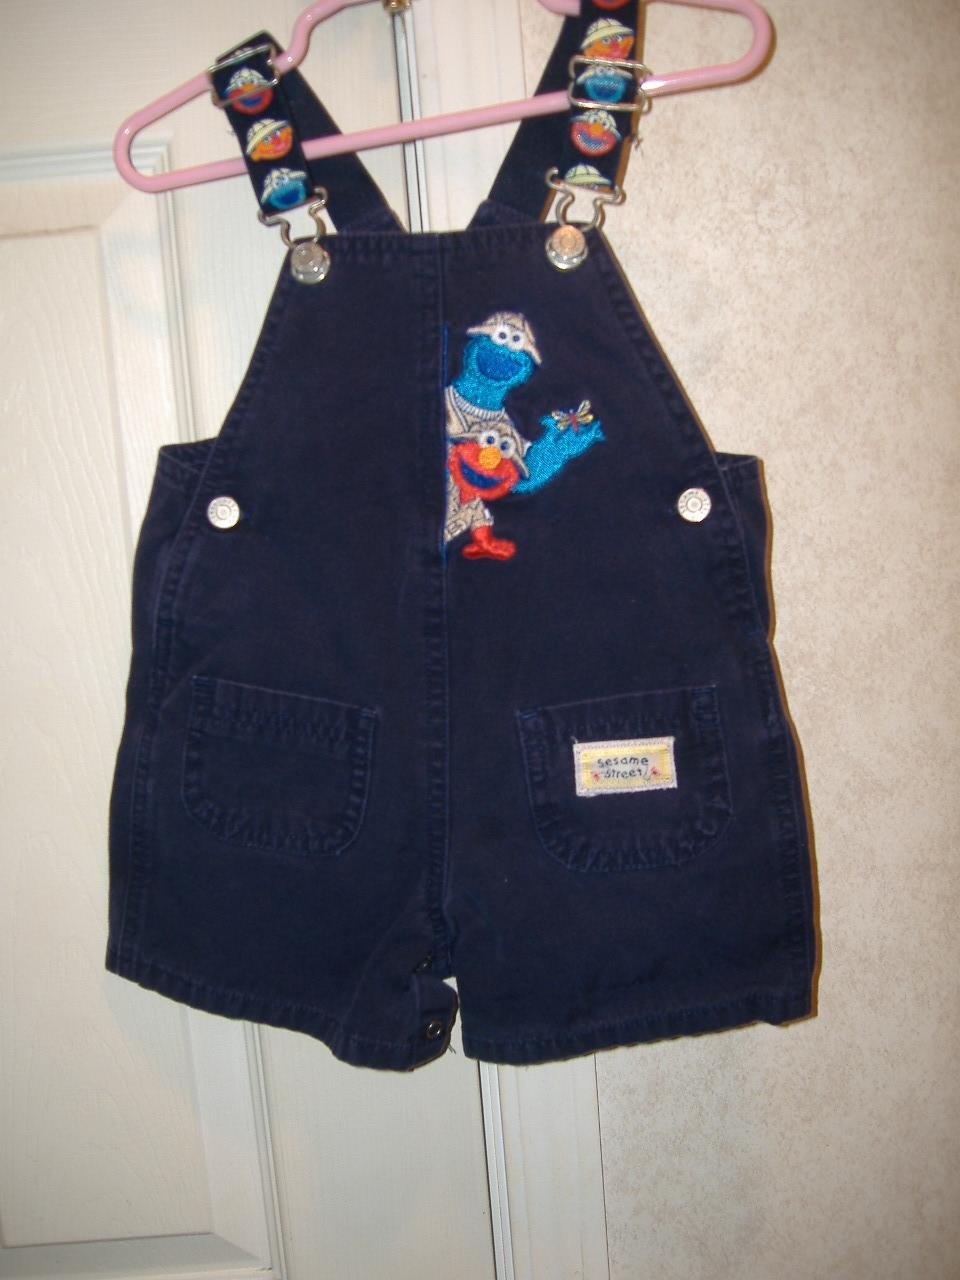 Sasame Street Toddler Overalls Shorts Size 18 Months